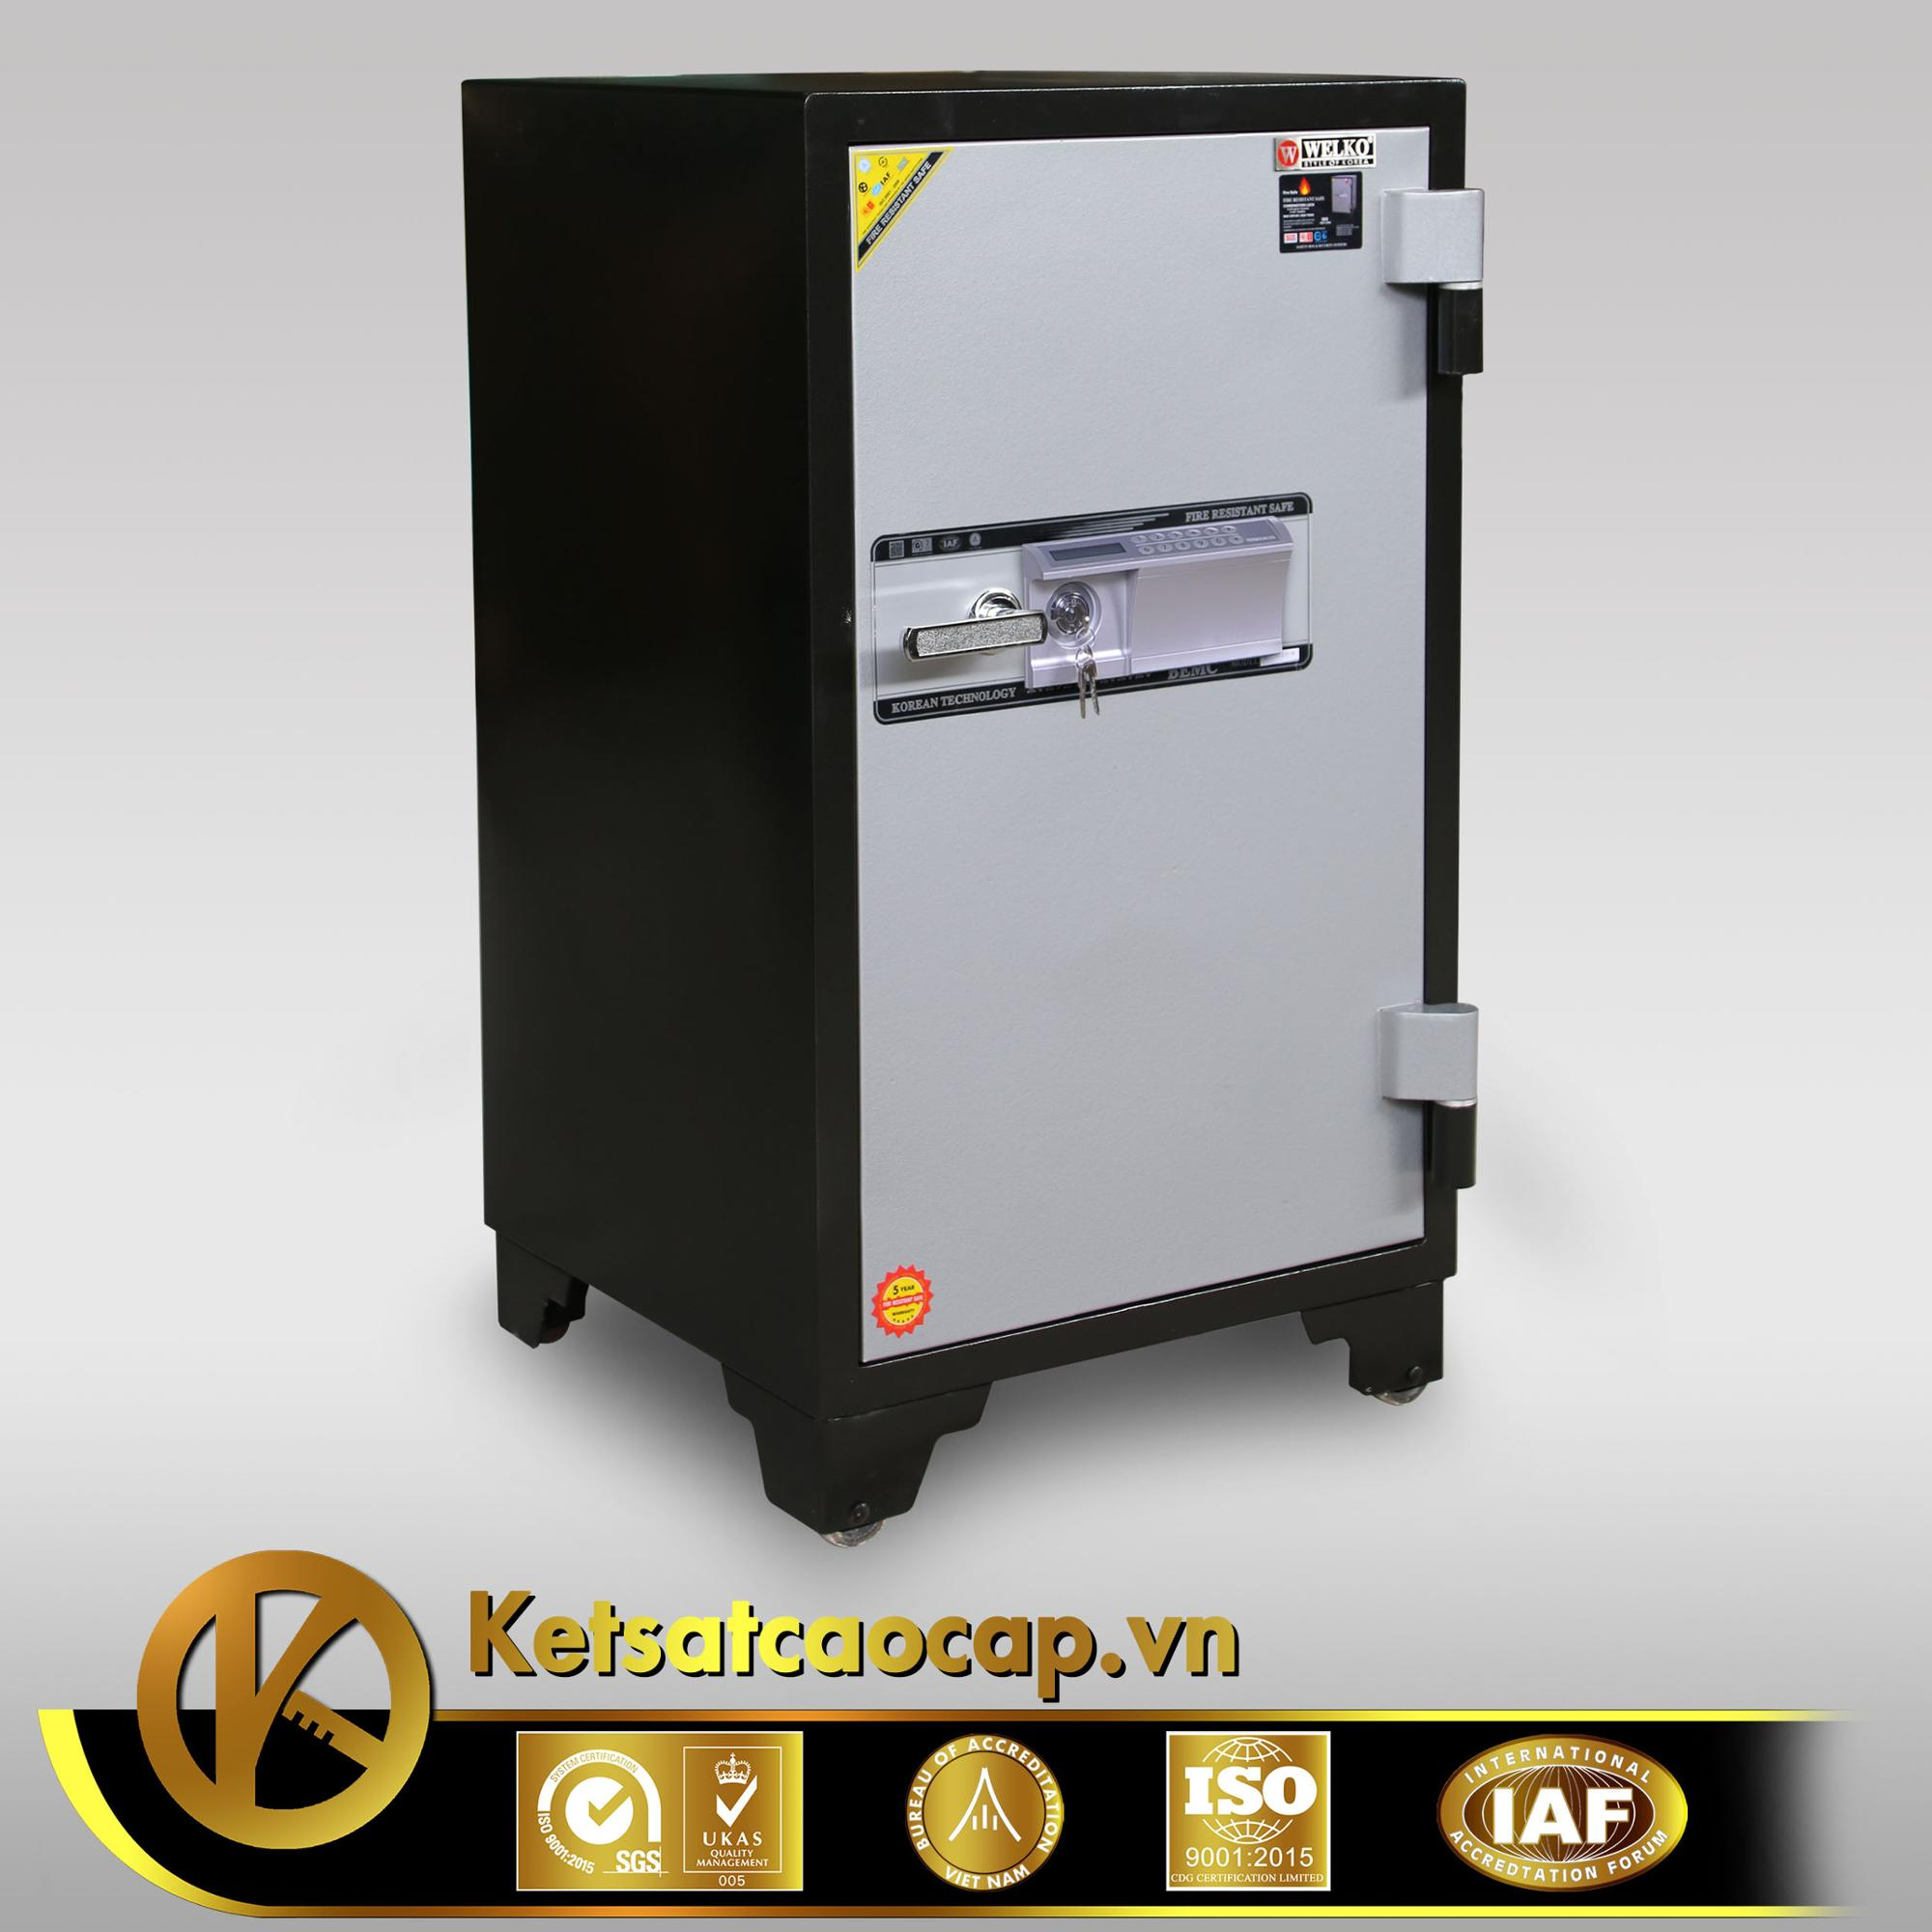 High quality safe locker - KS1070 EK